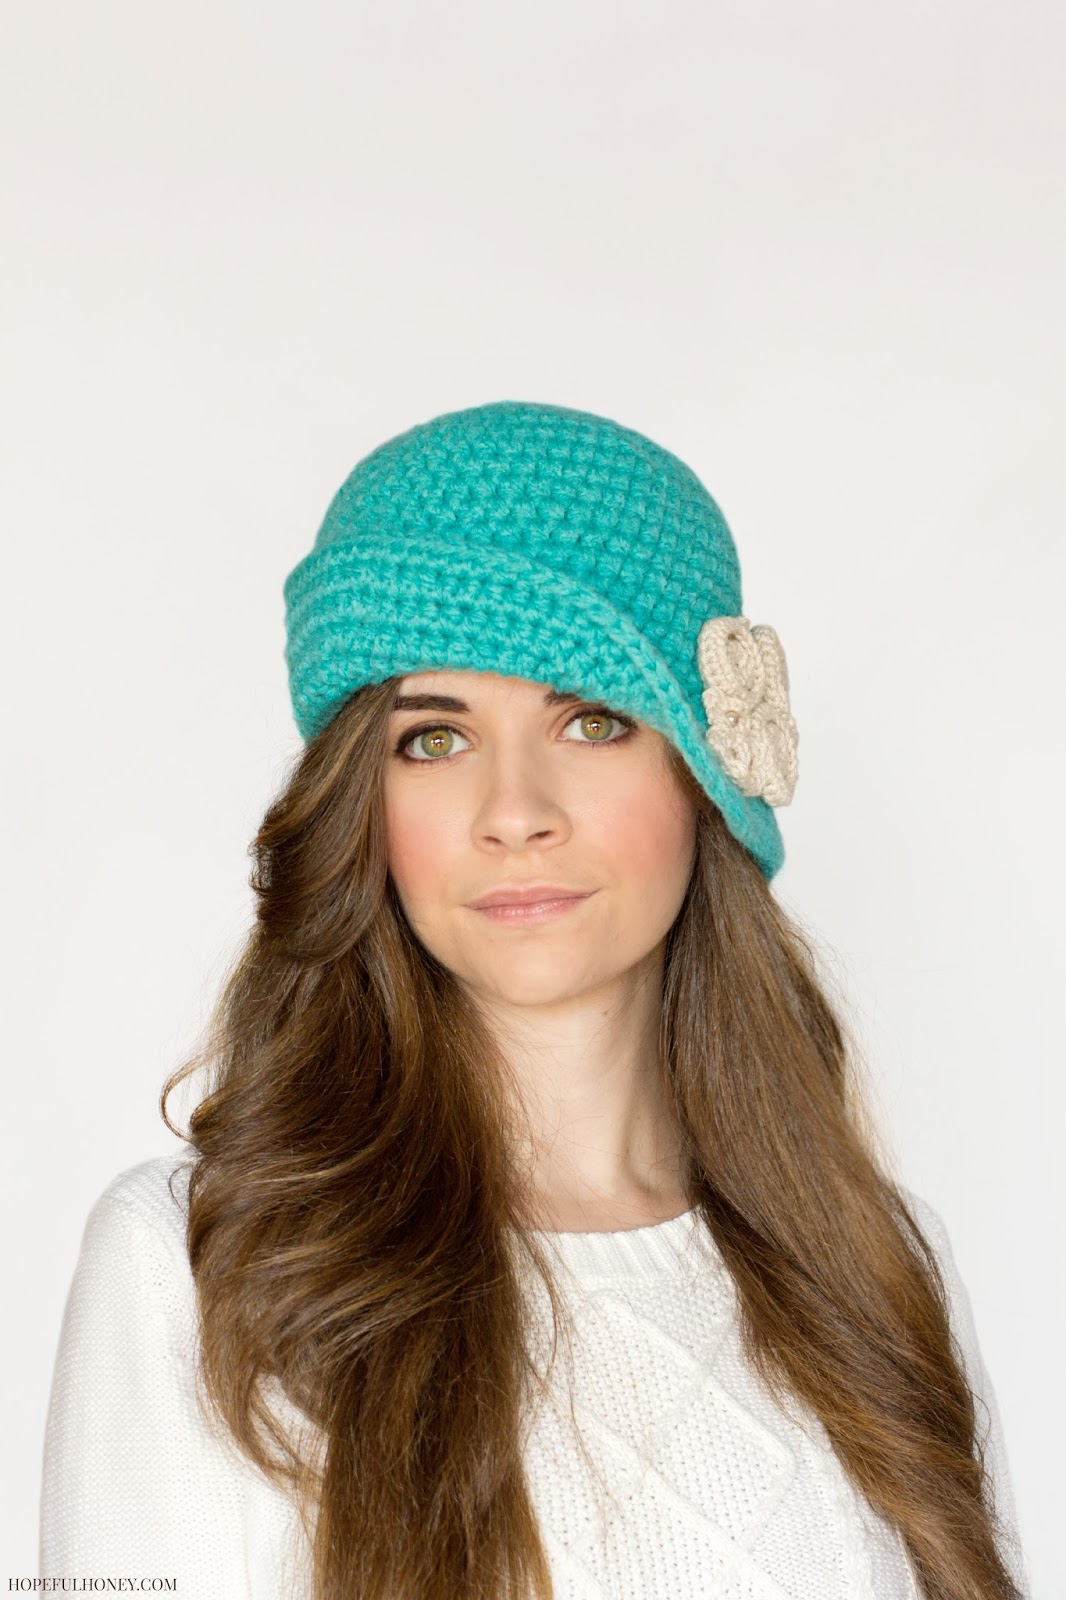 Crochet Pattern For A Cloche Hat : Hopeful Honey Craft, Crochet, Create: Charleston Cloche ...